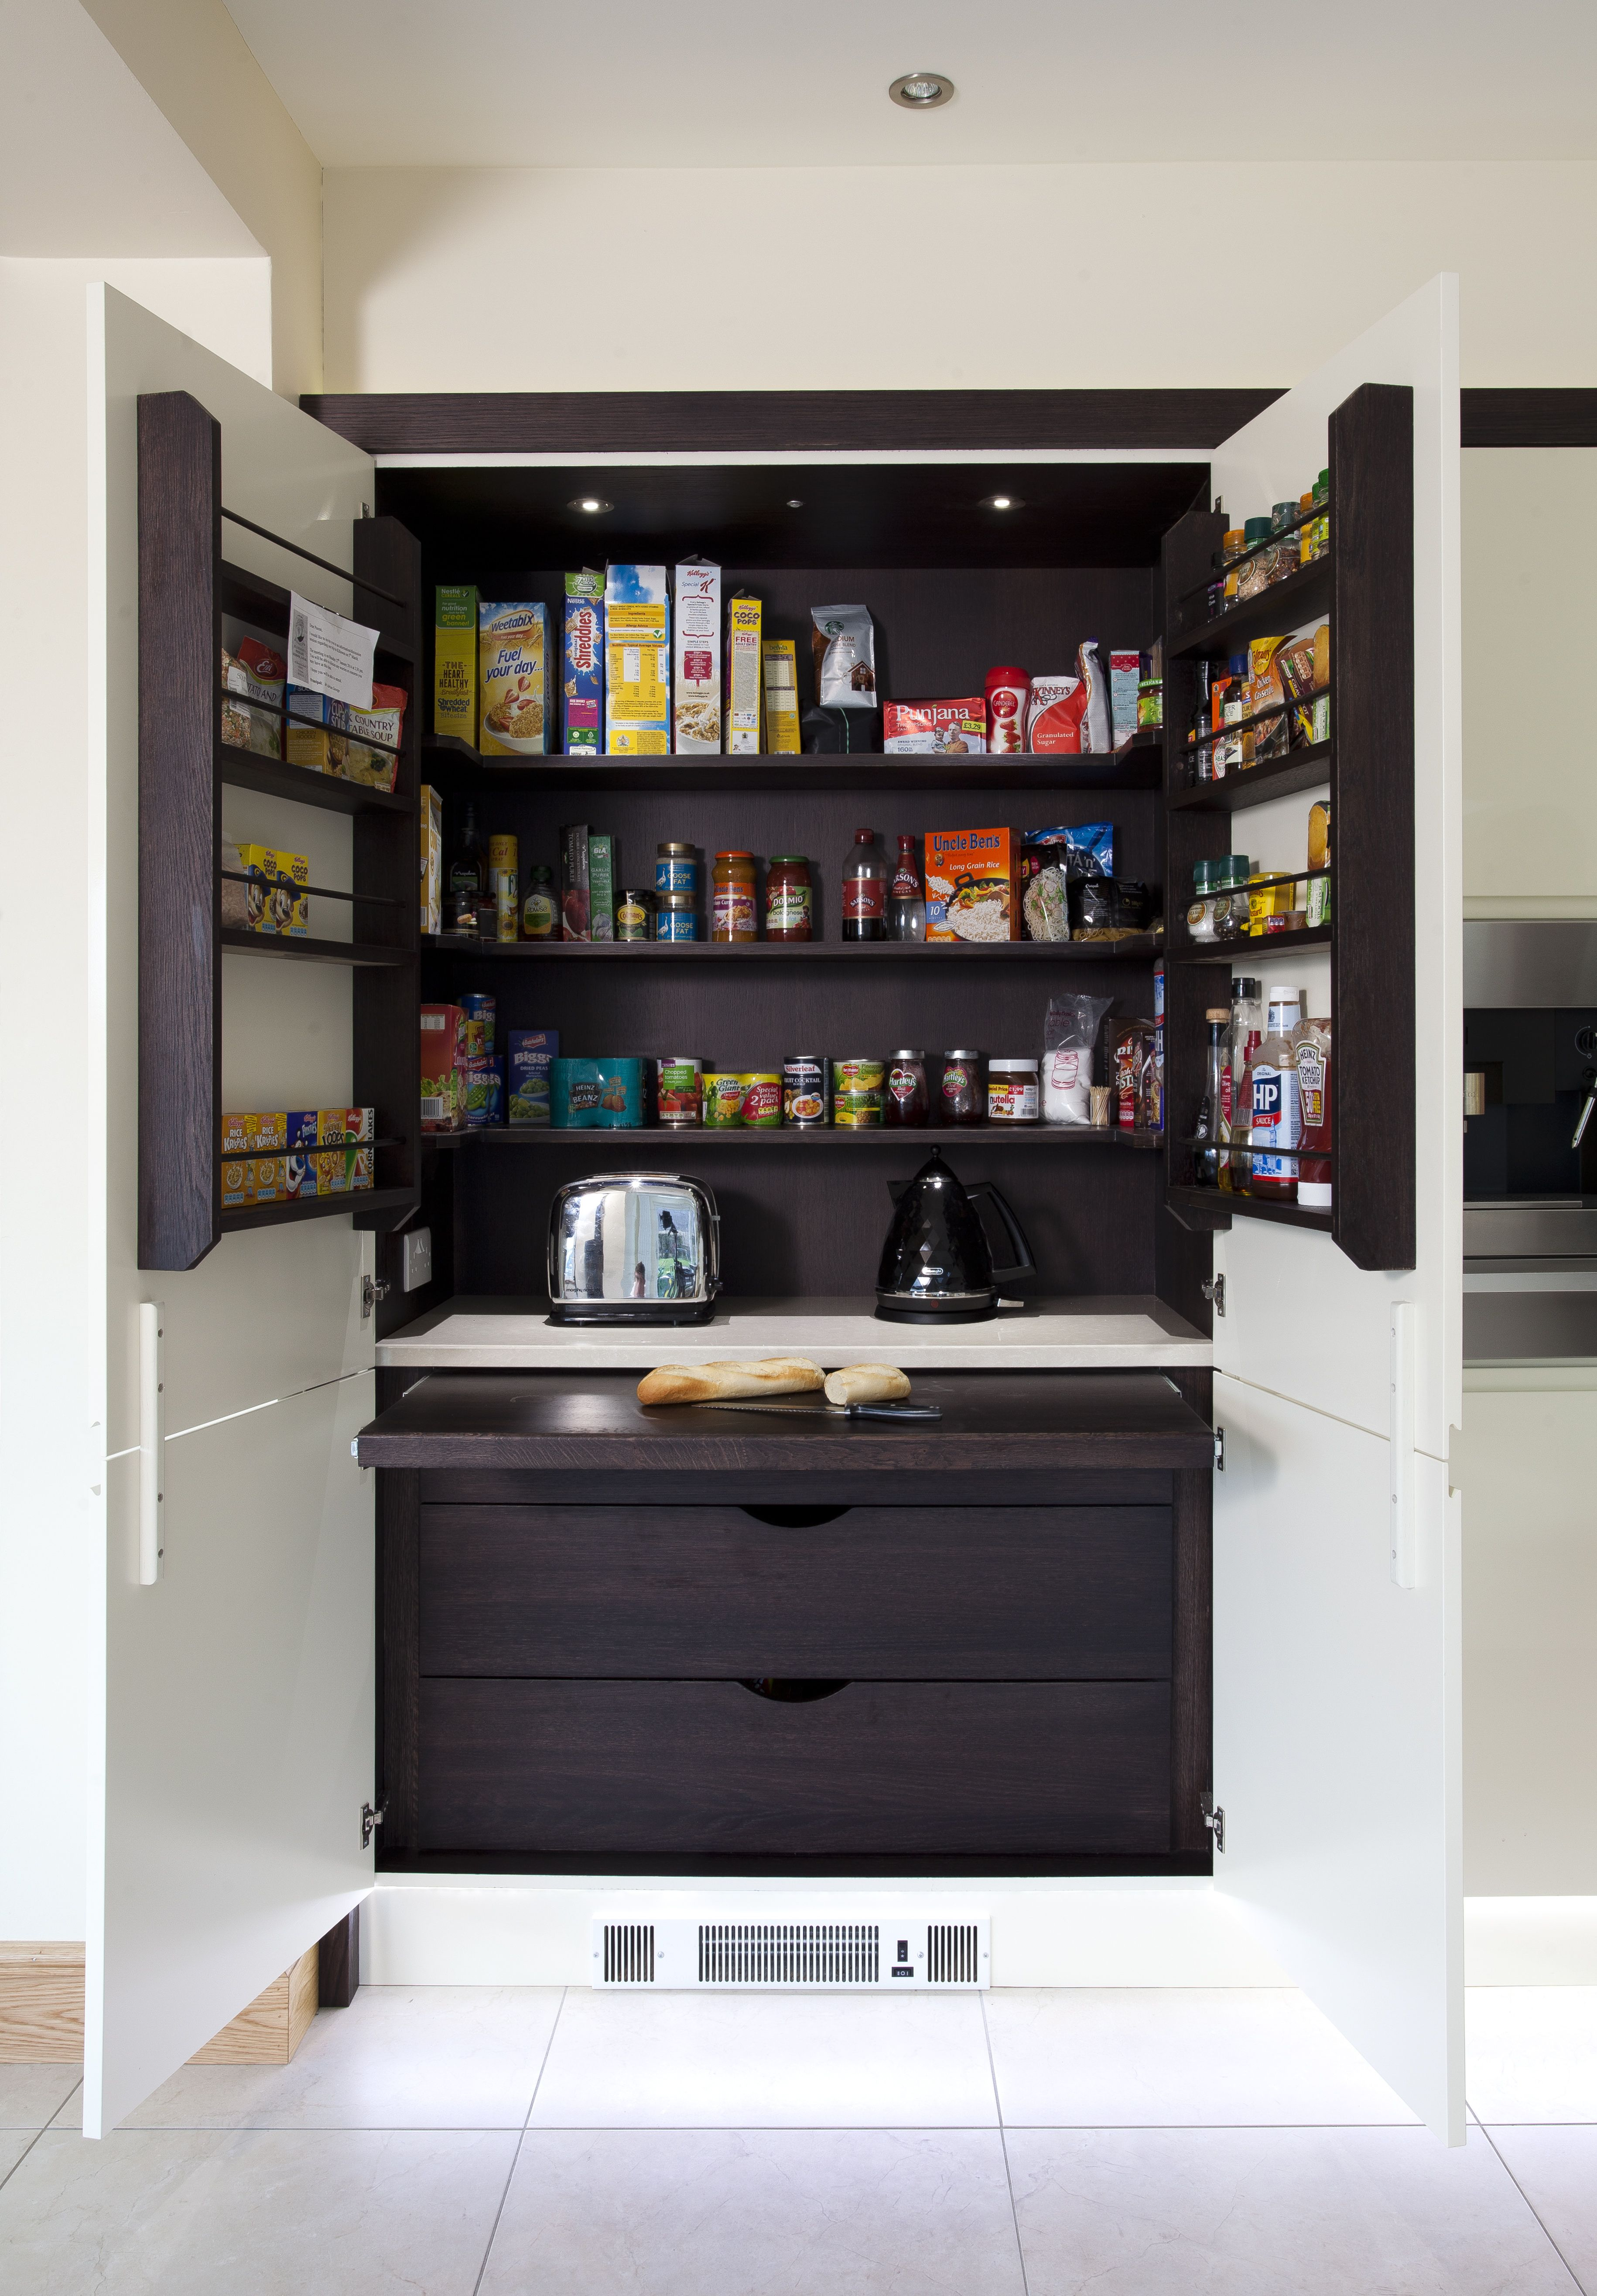 This 12M Pantry Larder Is Finished In The Same Rich